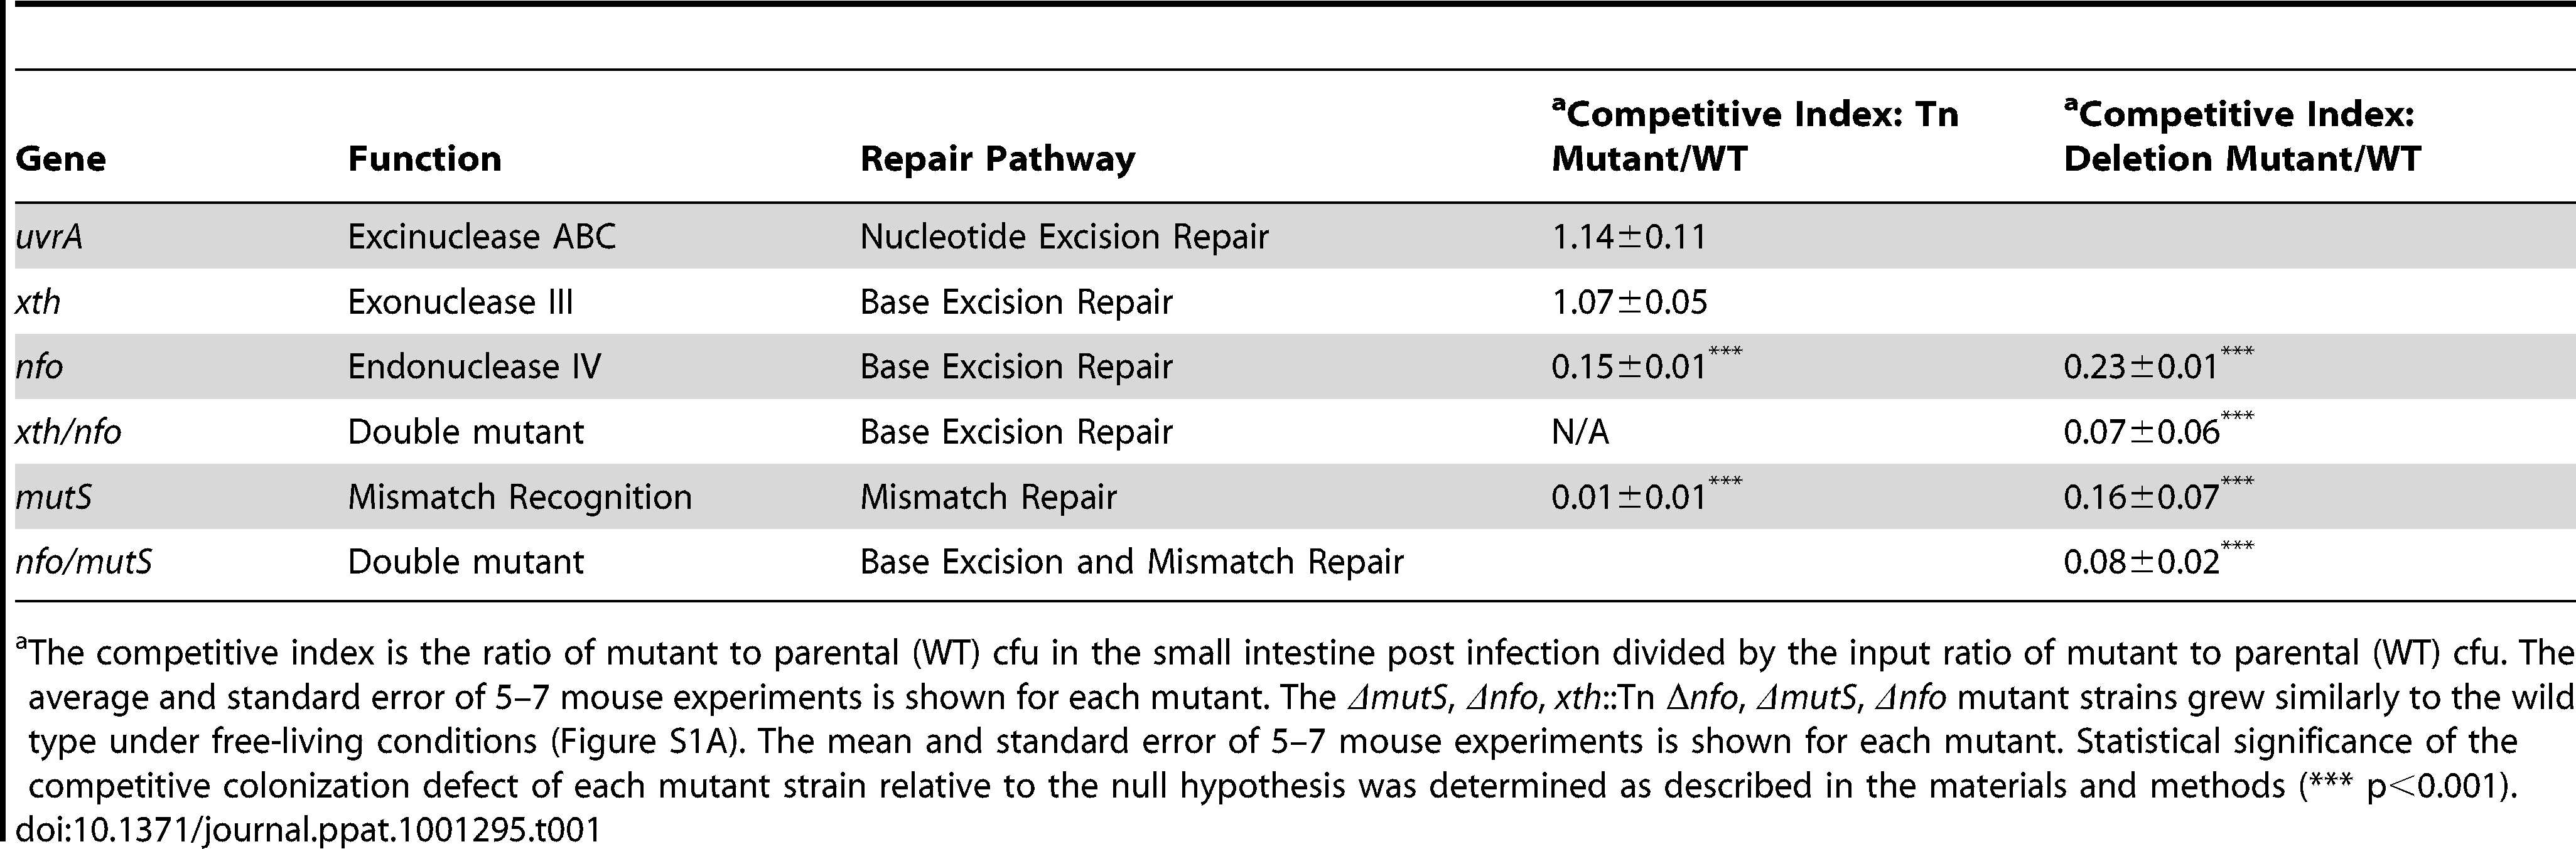 Ability of <i>V. cholerae</i> mutants defective in DNA repair pathways to colonize the infant mouse intestine in competition with the parental strain (WT).